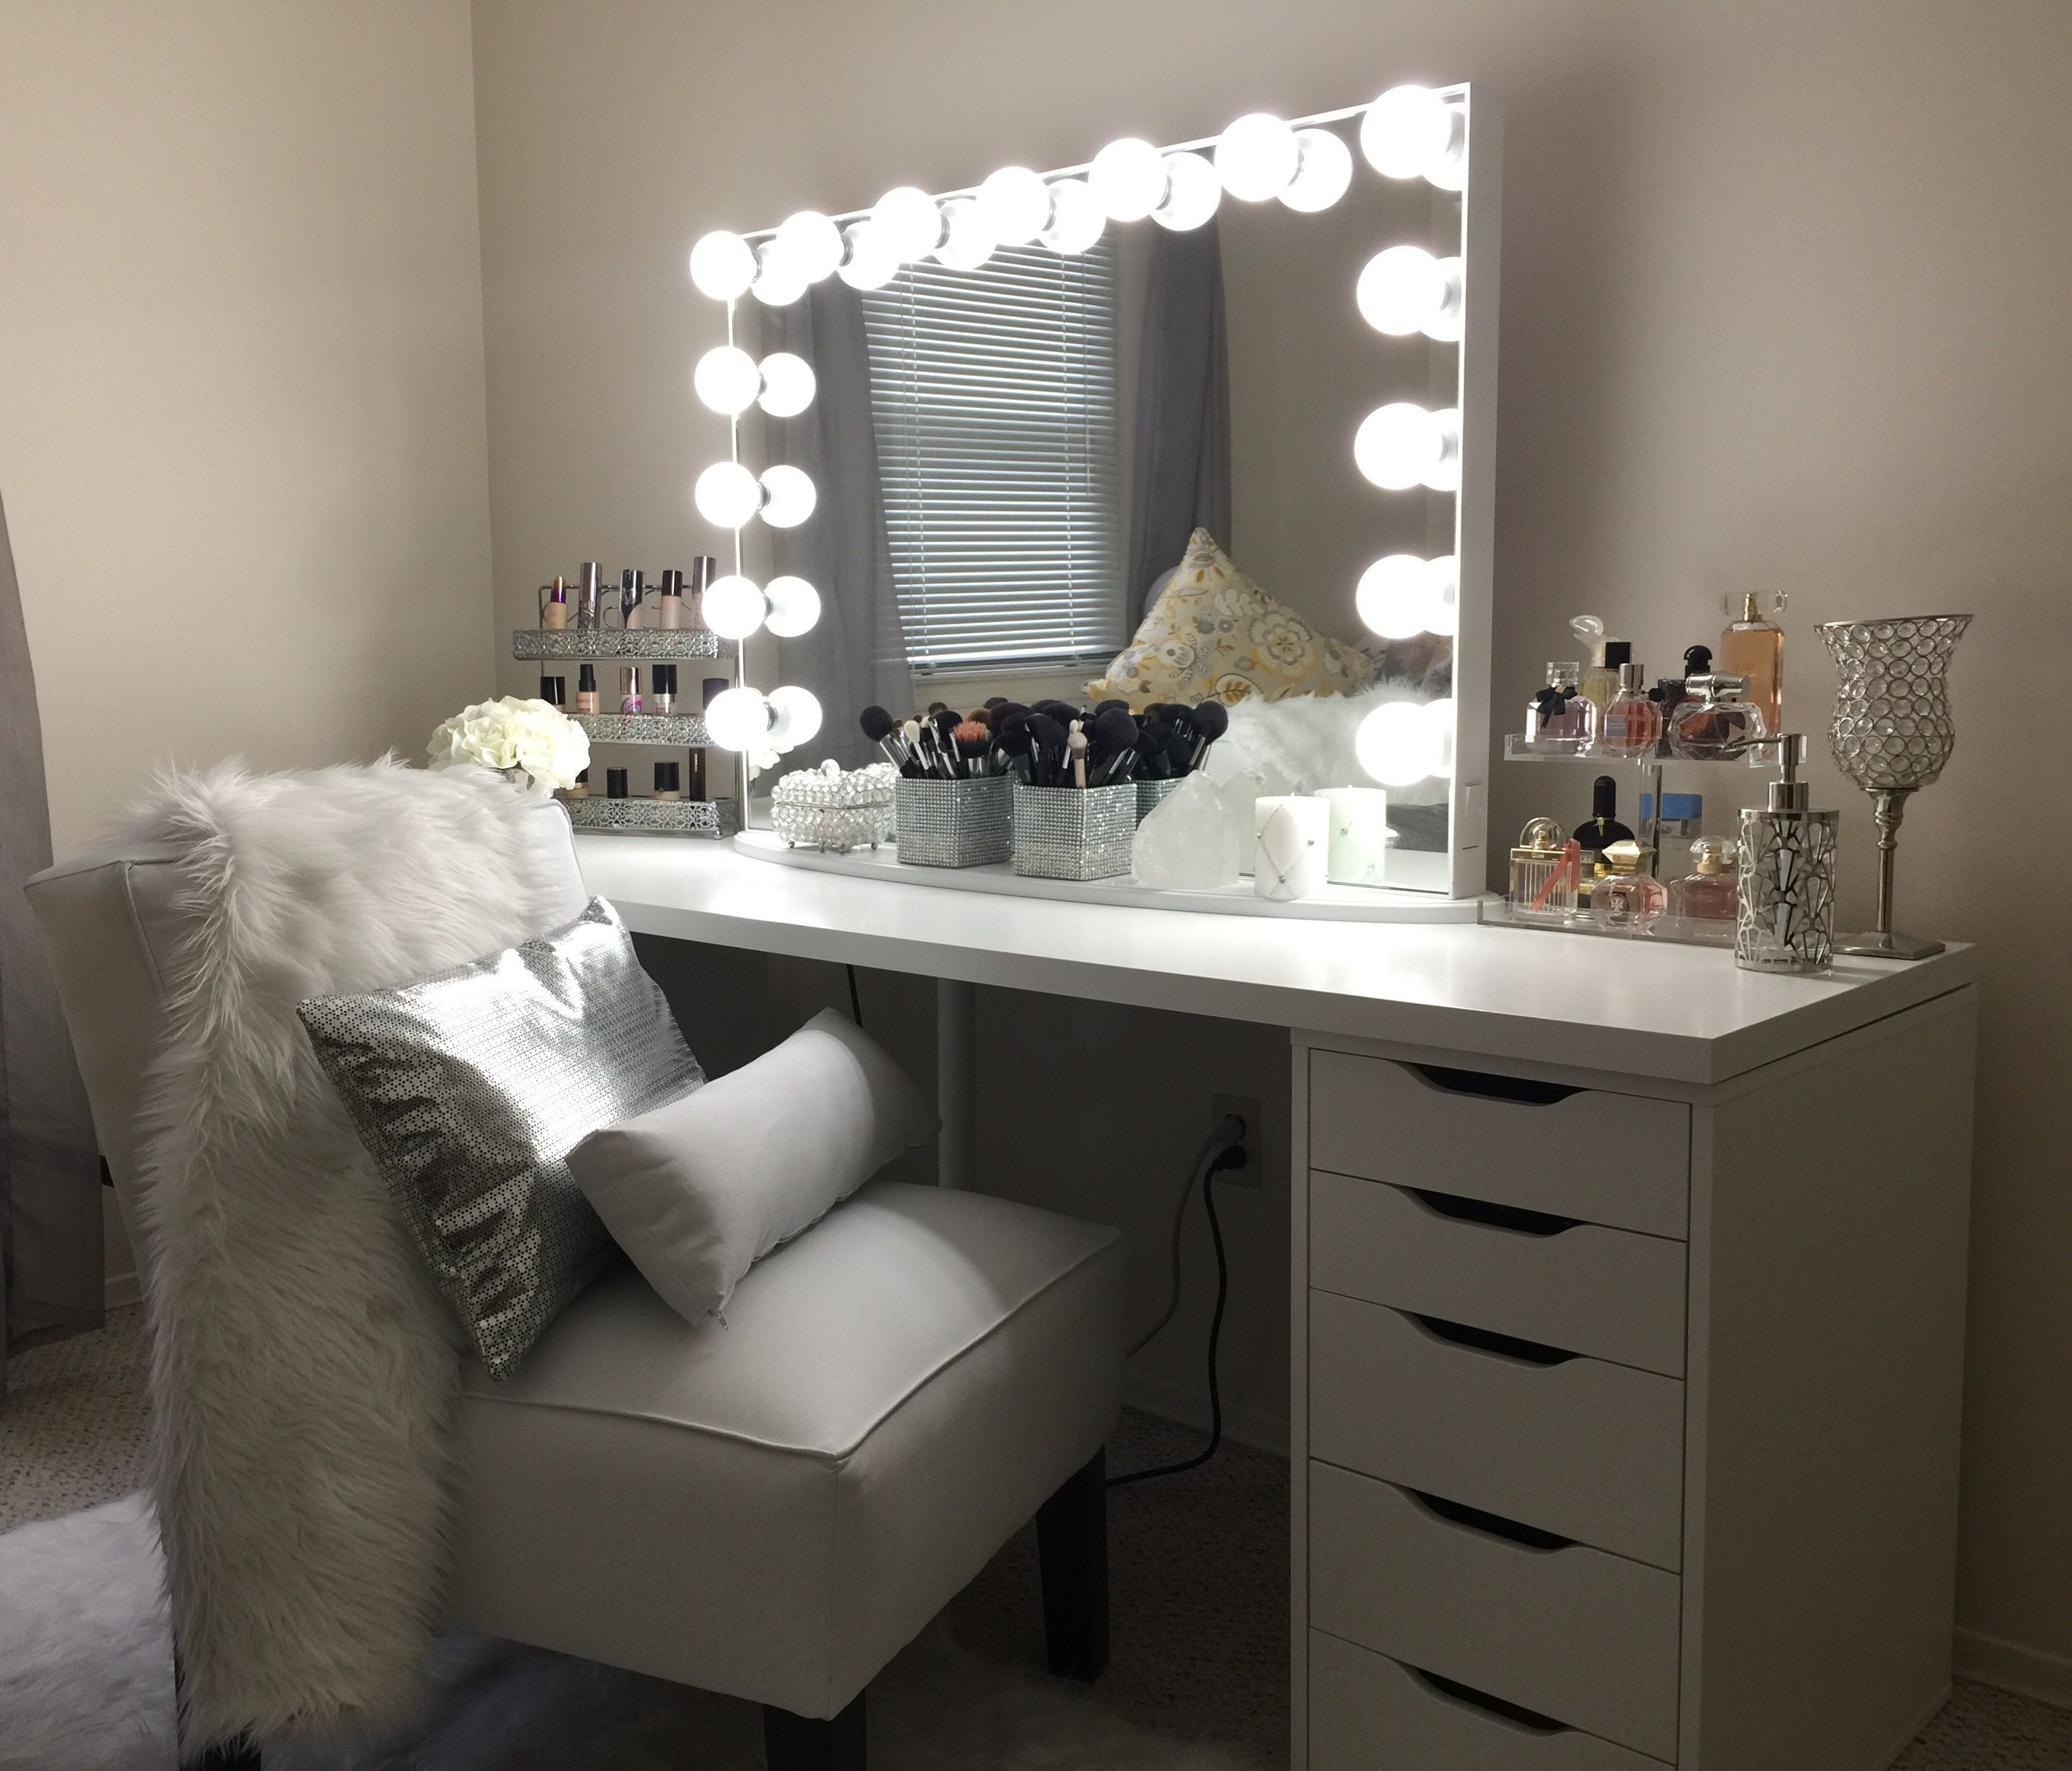 Vanity ideas ikea linnmon tabletop with ikea alex drawer units